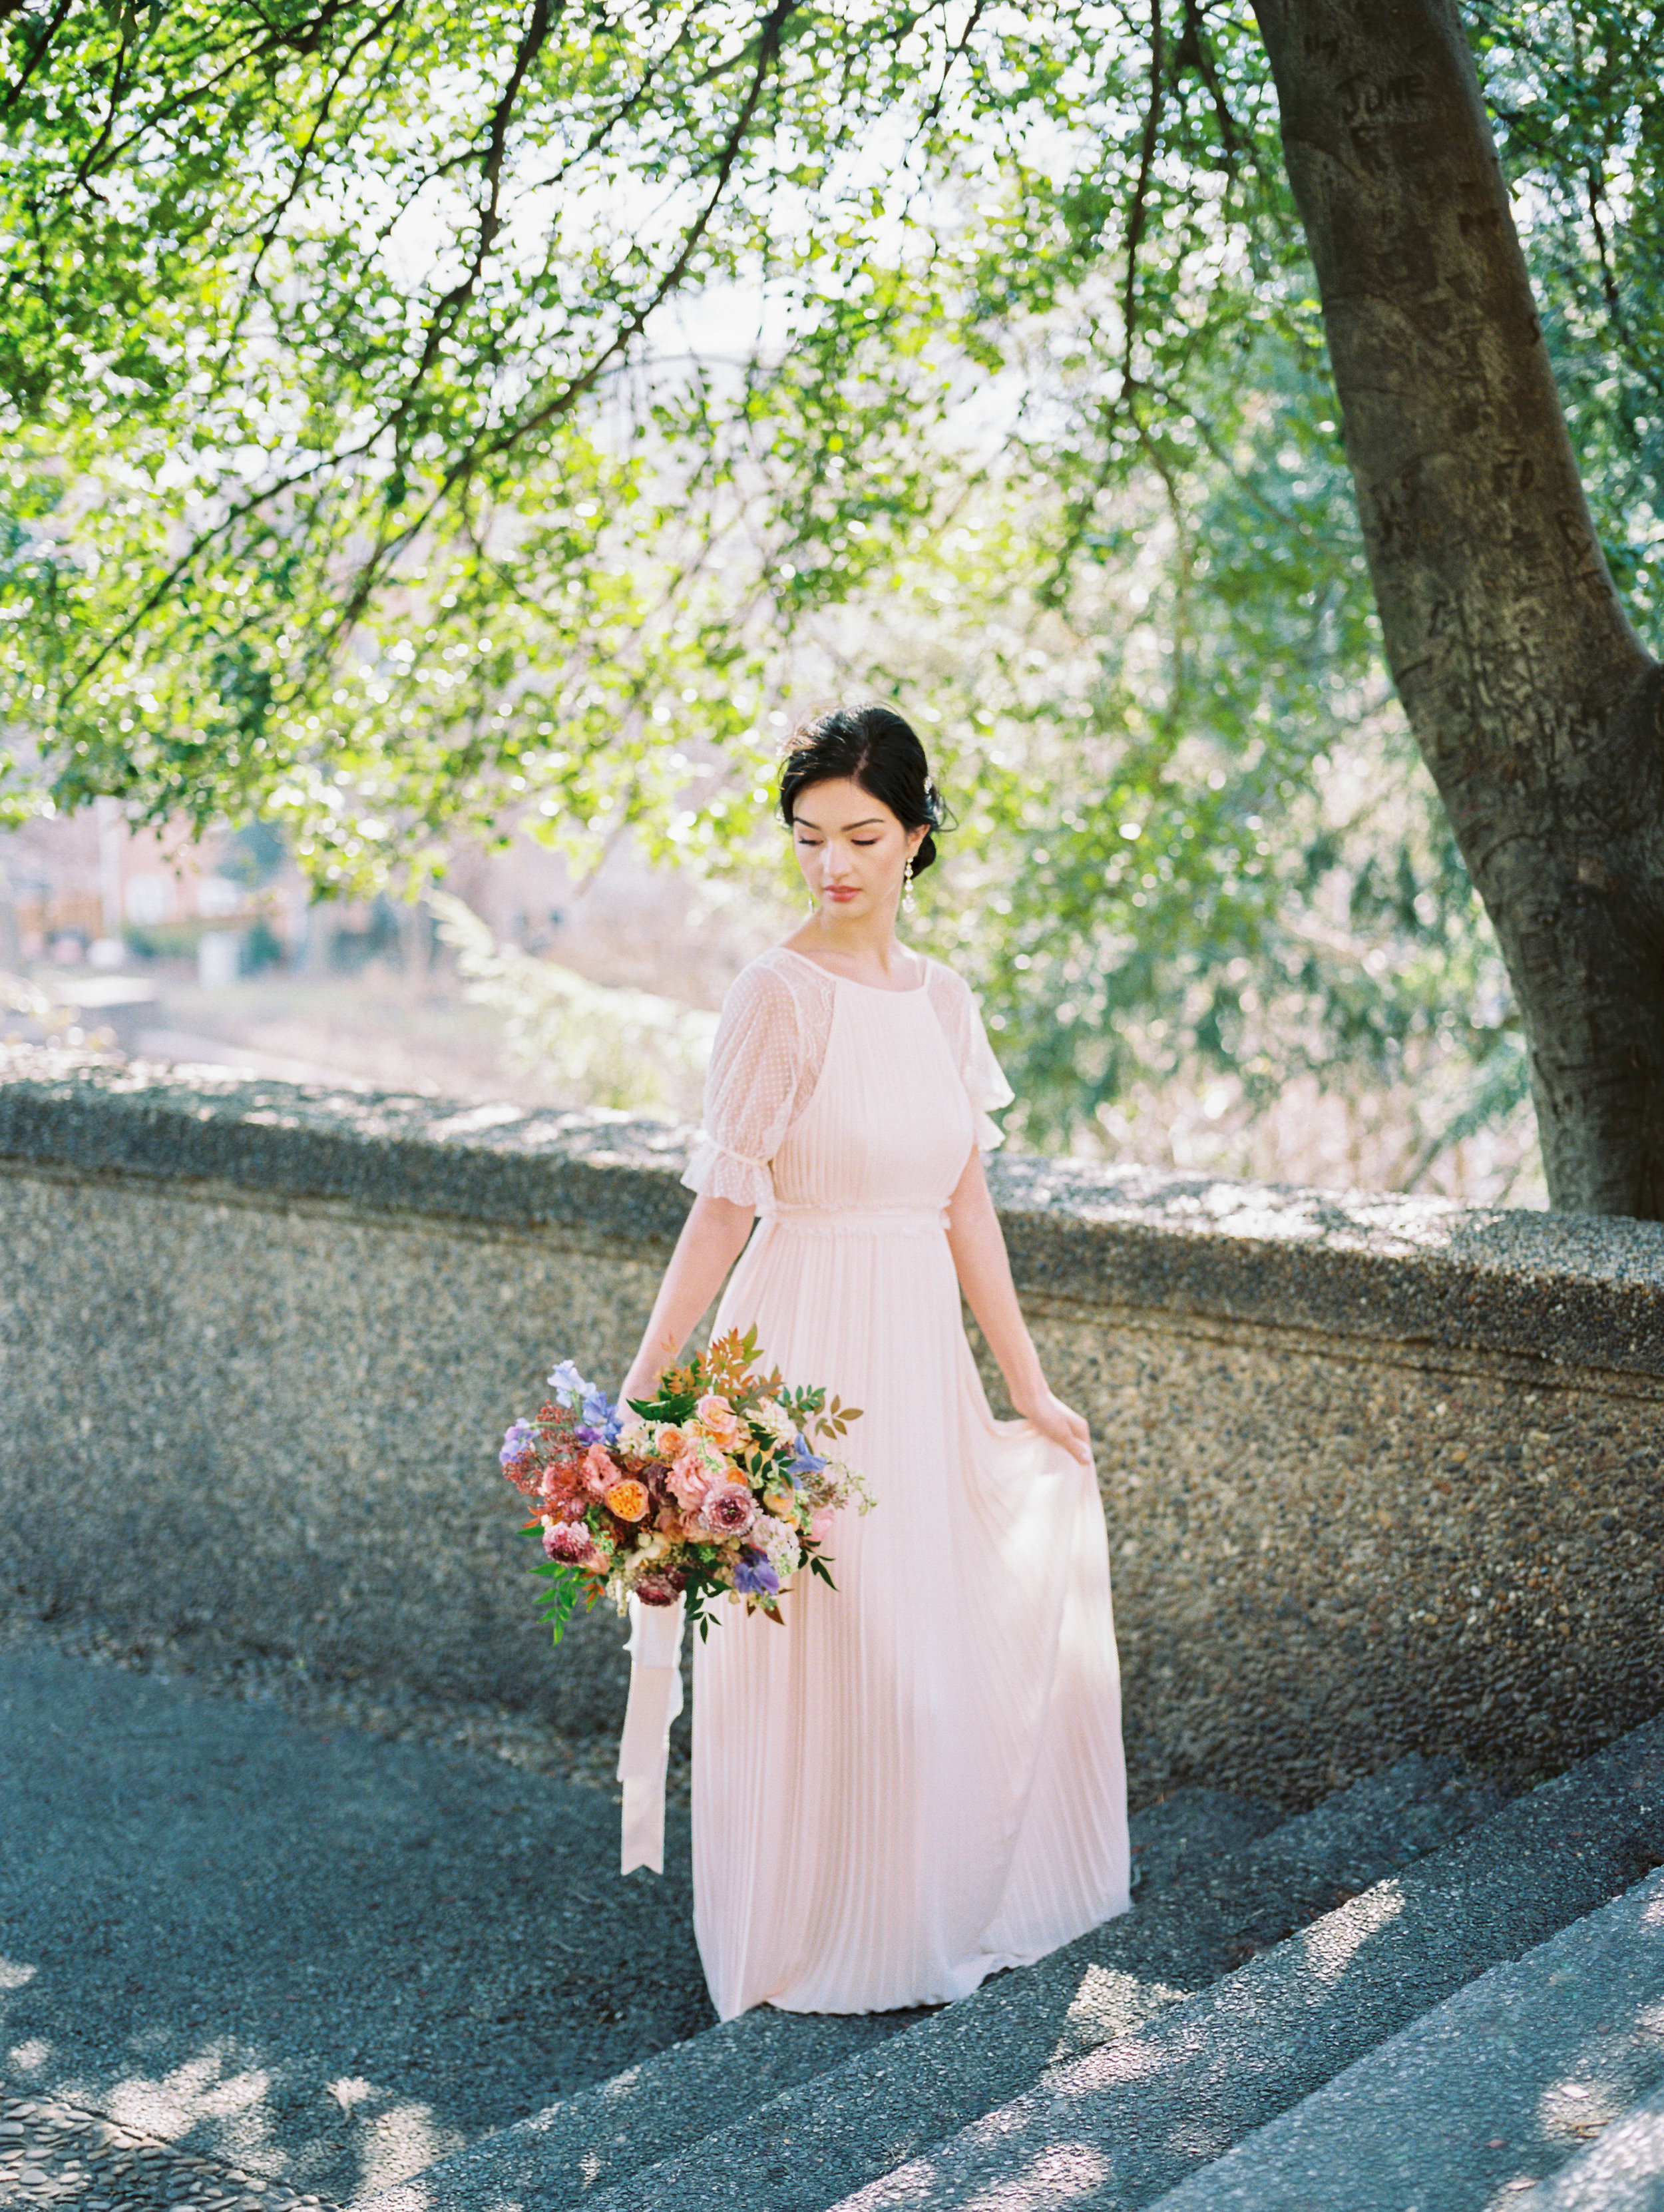 Early spring bridal inspiration at Meridian Hill Park in DC